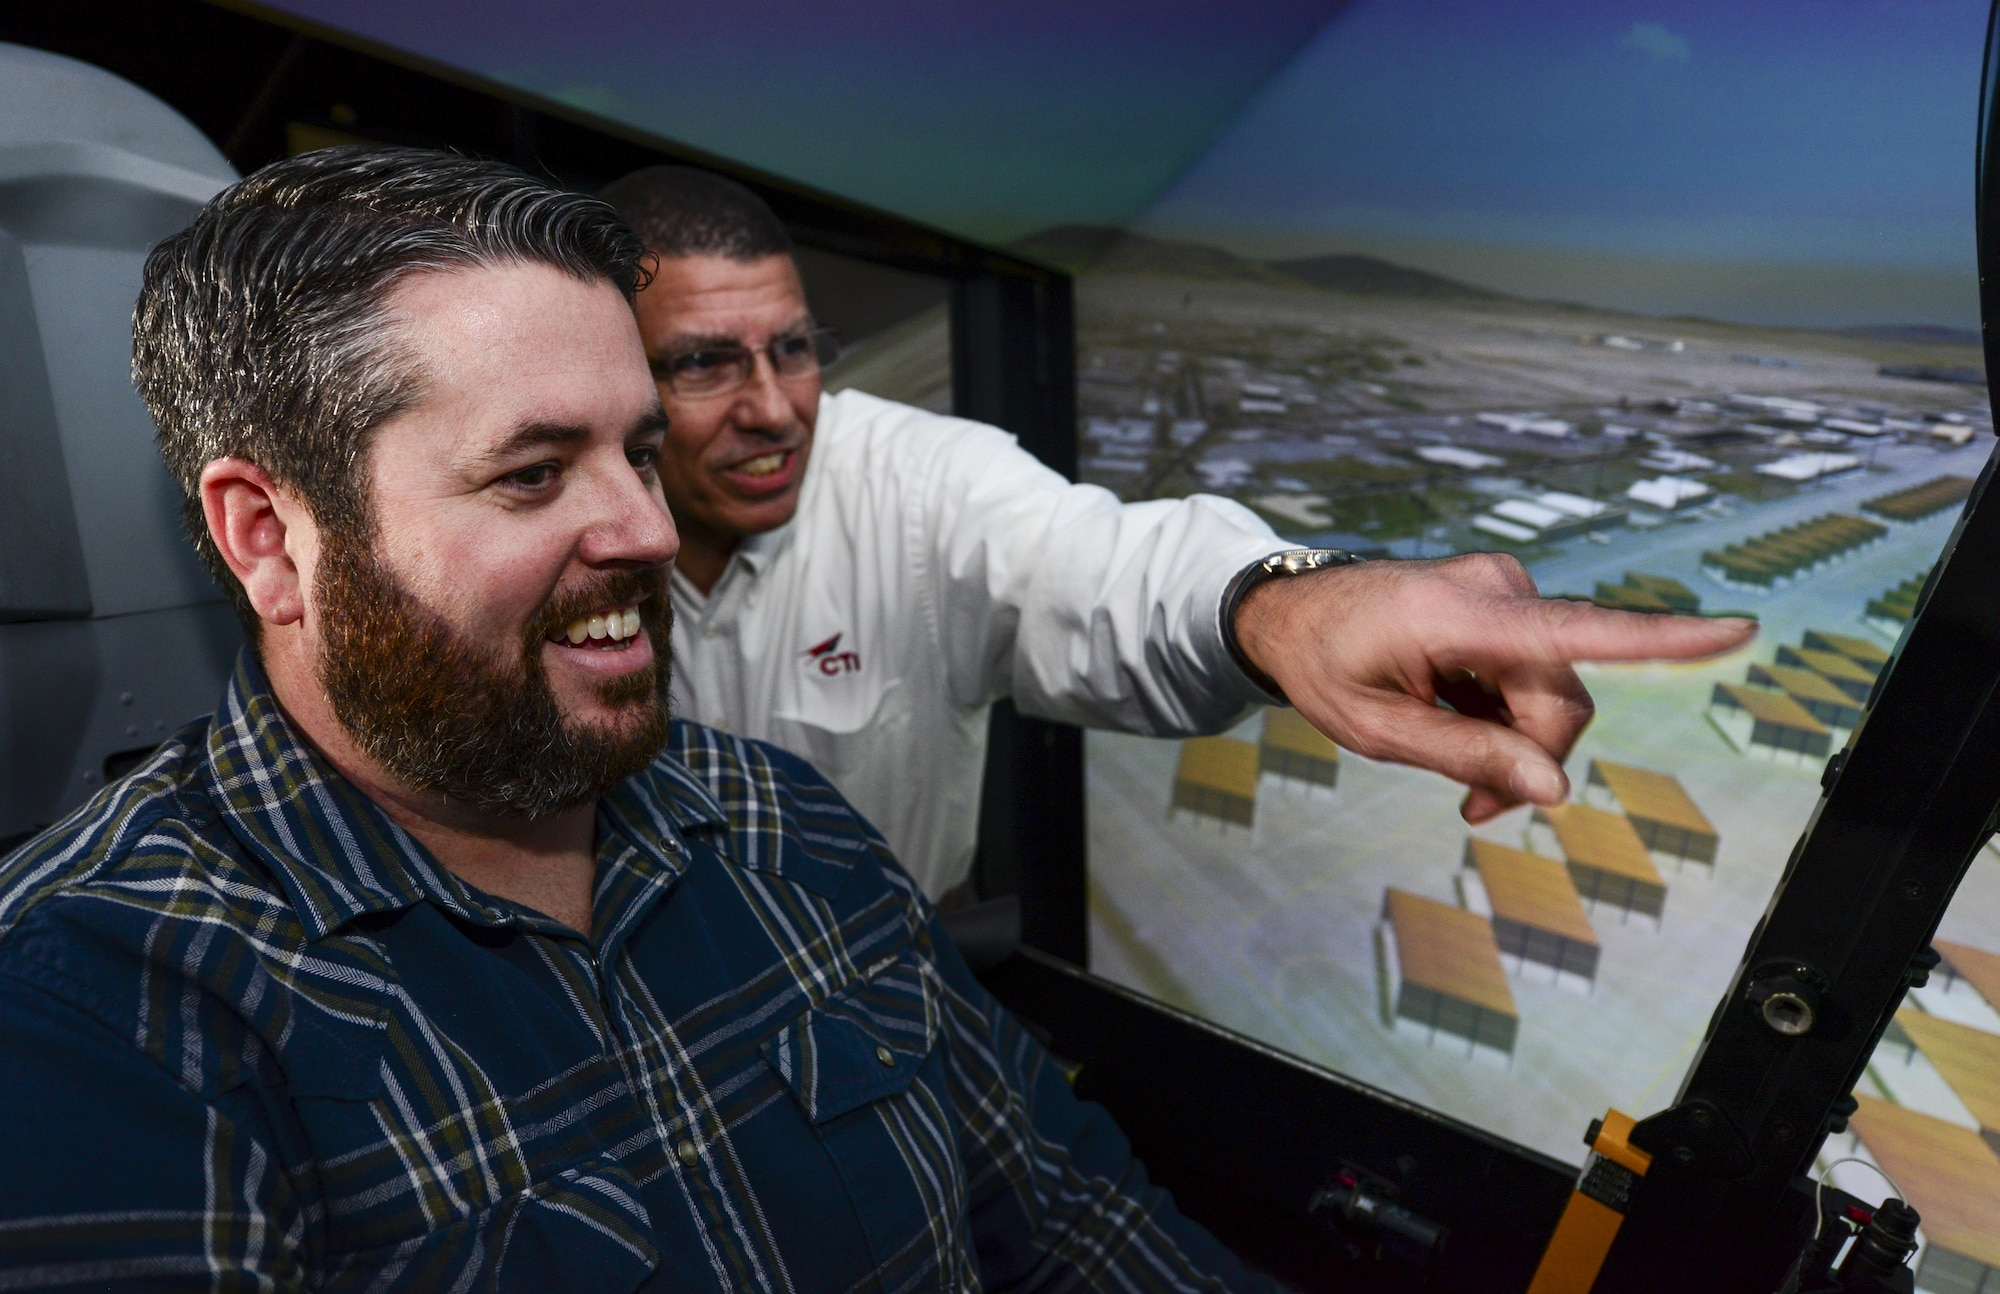 Retired U.S. Air Force Lt. Col. Gregg Montijo points ahead while Marcus Foiles pilots an A-10 flight simulator at Davis-Monthan Air Force Base, Ariz., Jan. 27, 2017. Foiles was 10 years old in 1989 when he was granted a trip to D-M via the Make-A-Wish Foundation after being diagnosed with leukemia. Foiles made the trip back to D-M to reconnect with Montijo, the pilot who hosted the tour 28 years ago. (U.S. Air Force photo by Airman 1st Class Nathan H. Barbour)